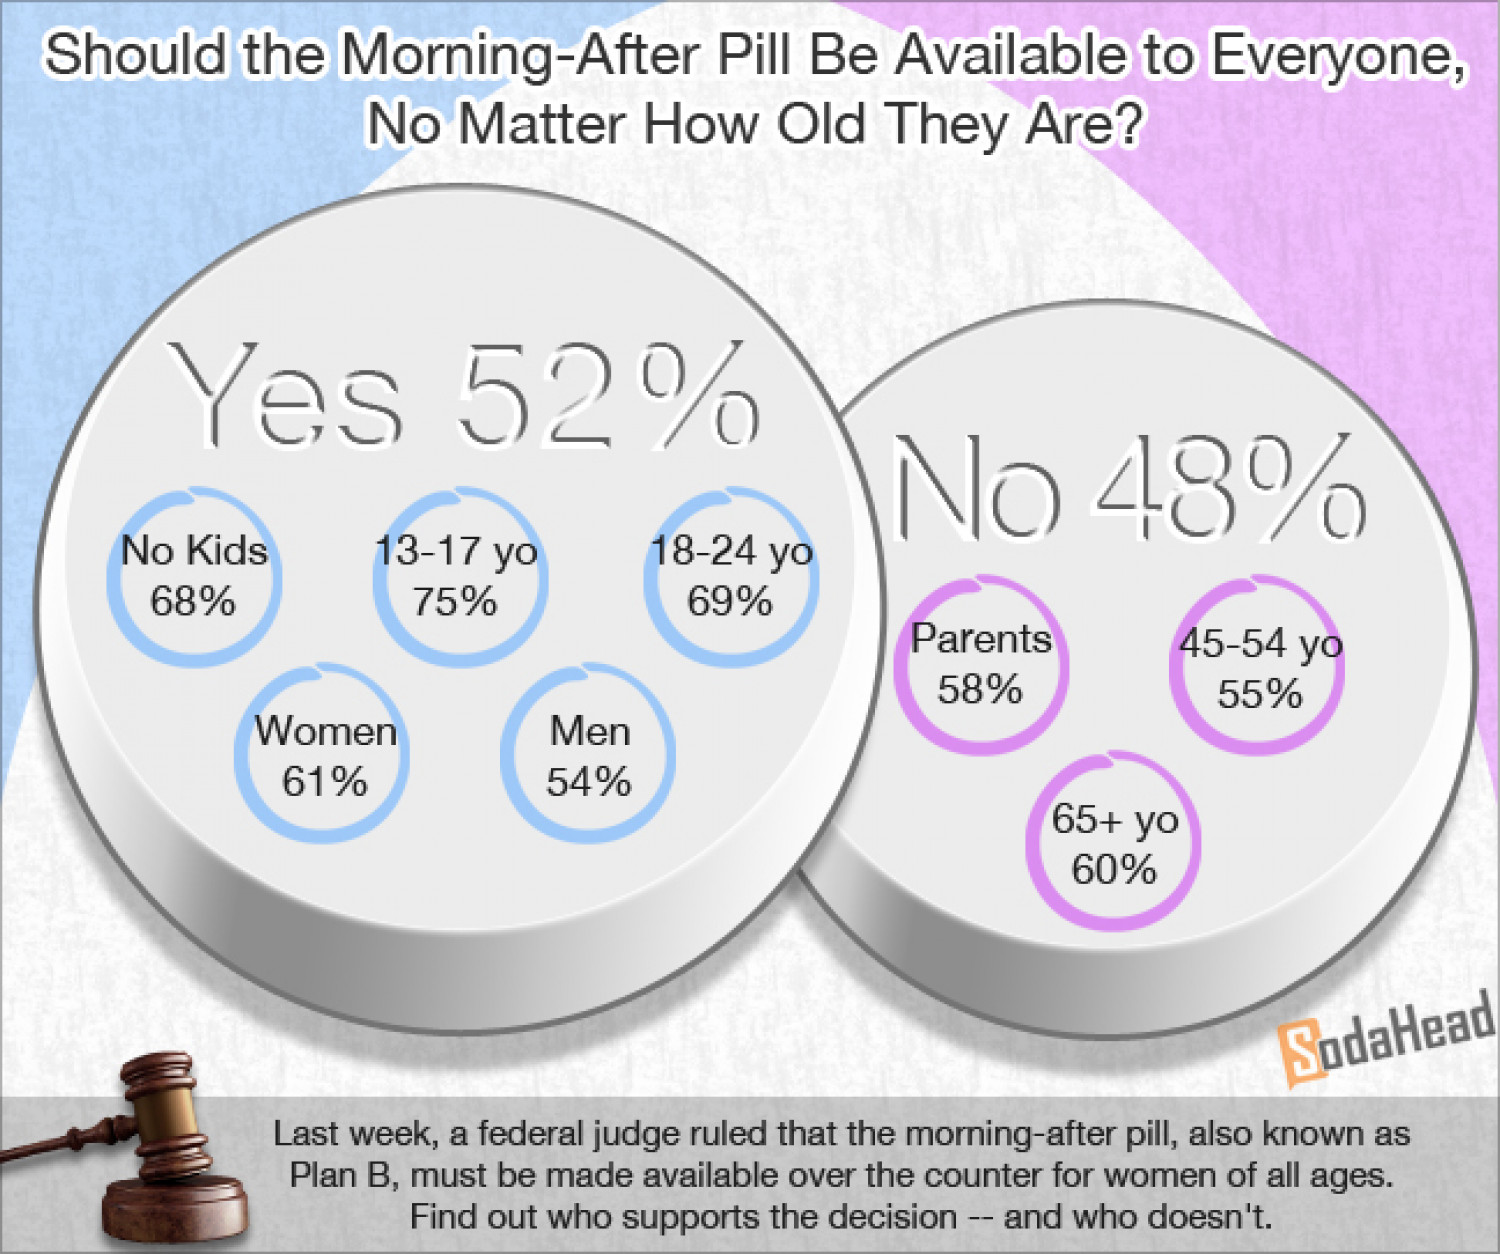 the morning after pill What is the morning after pill (plan b pill) the morning-after pill (also known by the brand name plan b), is emergency contraception that a woman takes to prevent pregnancy it's a form of birth control which is used after unprotected sex takes place.